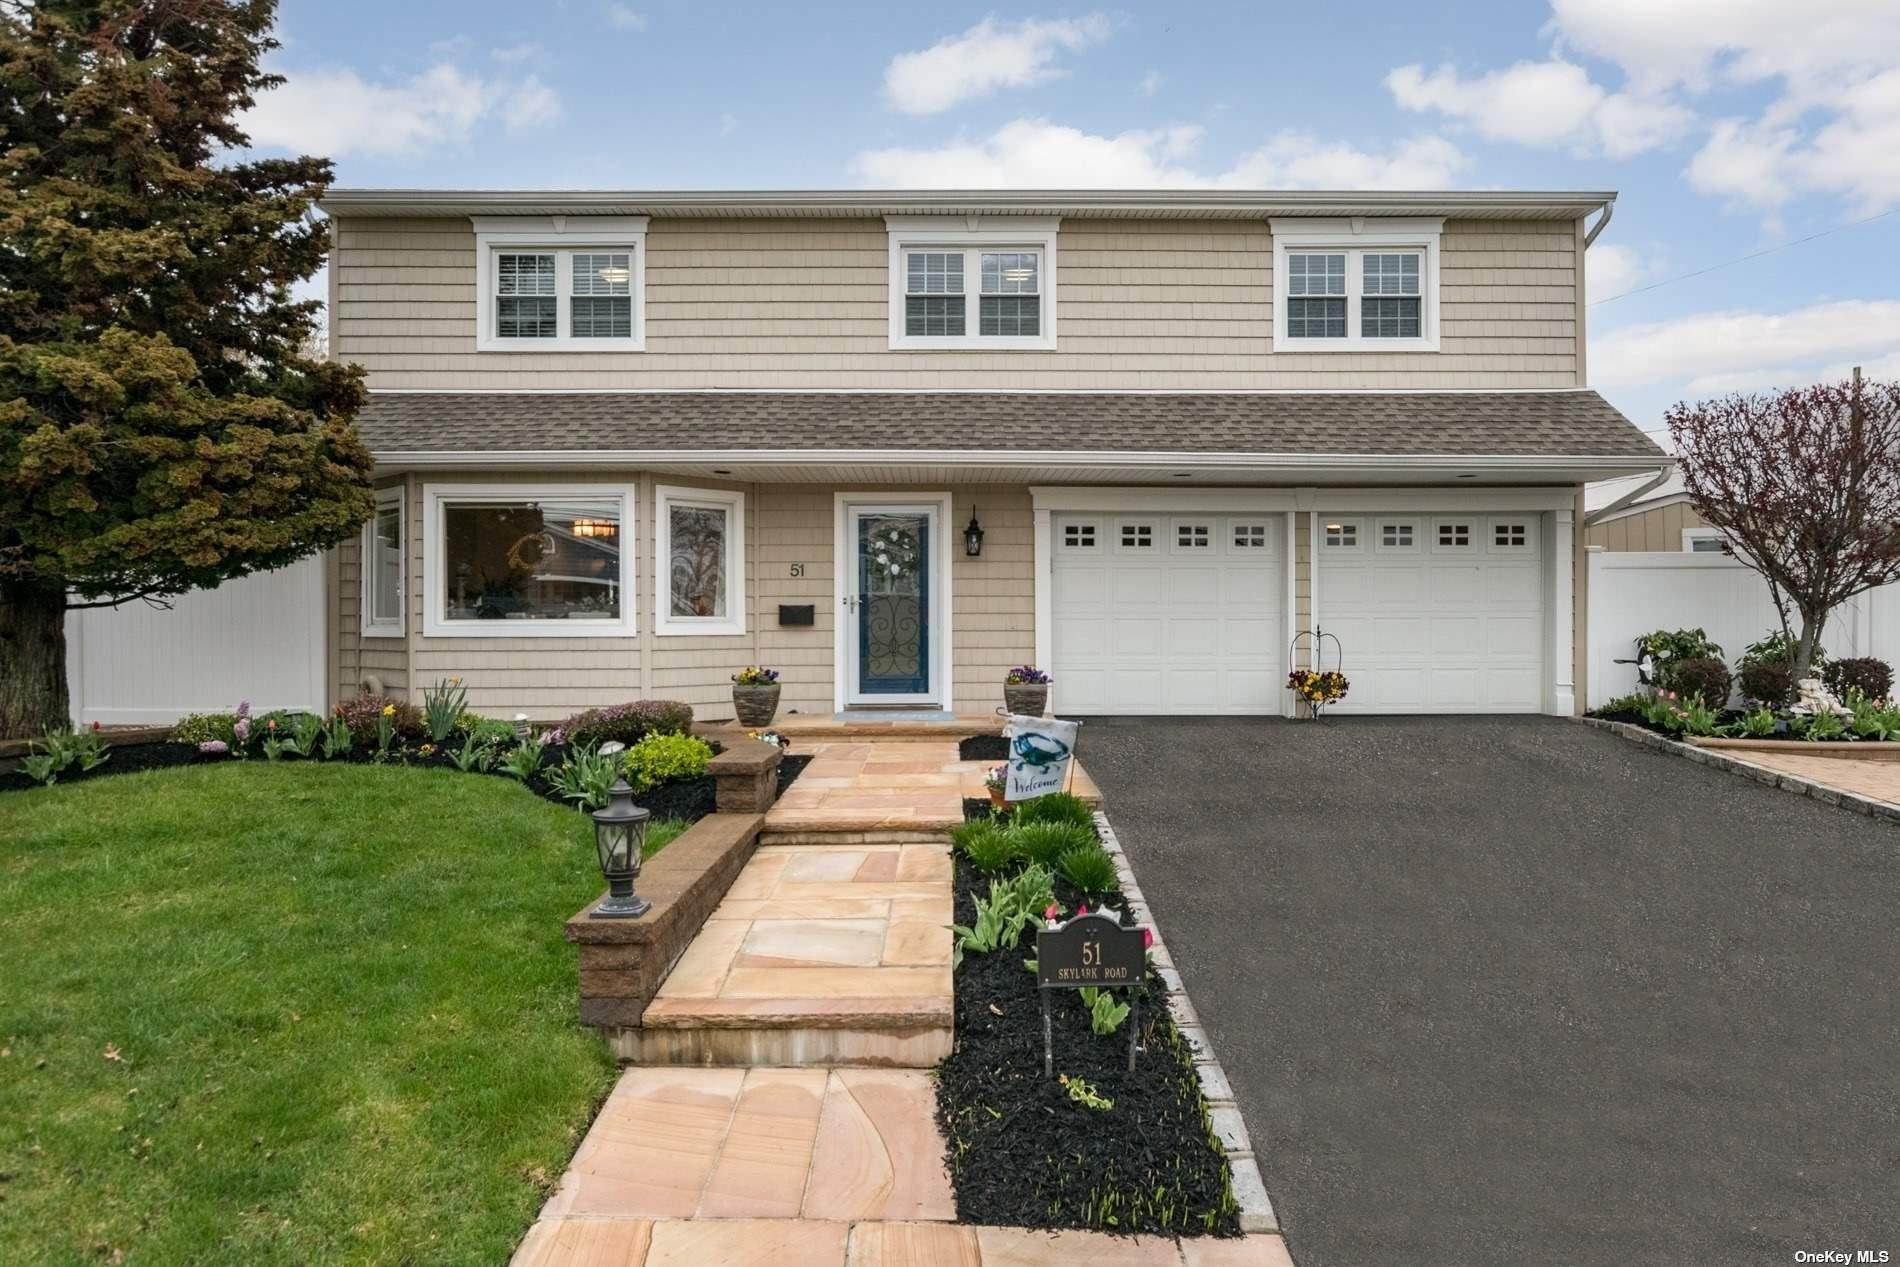 Residential for Sale at 51 Skylark Road Massapequa Park, New York 11762 United States